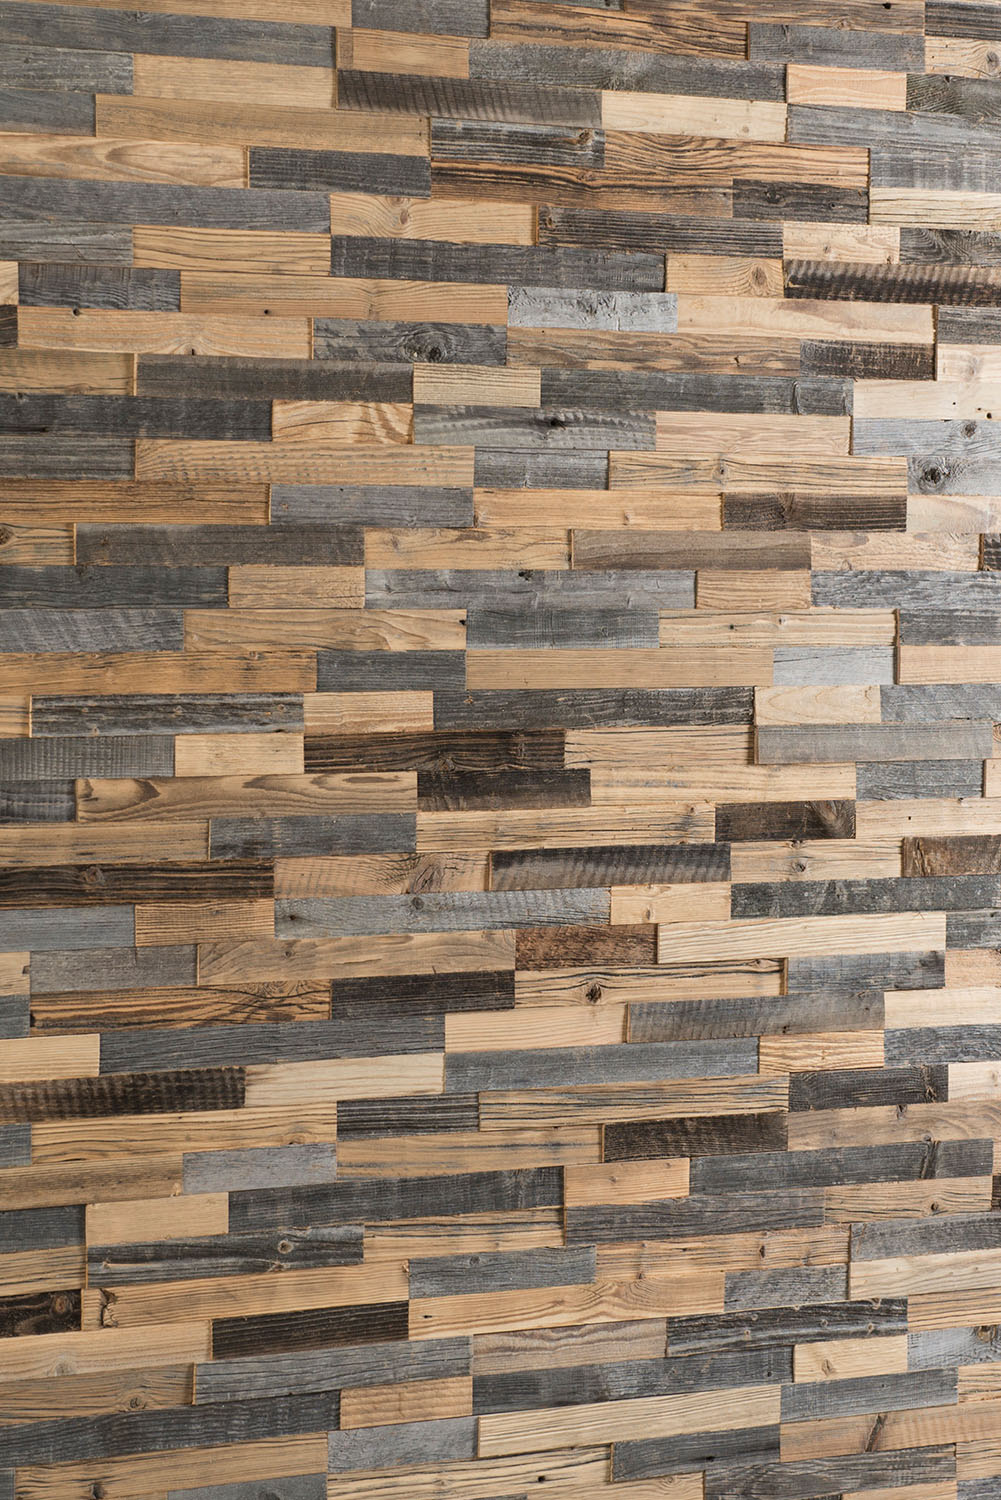 3d Wood Wall Panels Takara Wood Design 3d Wood Wall Panels